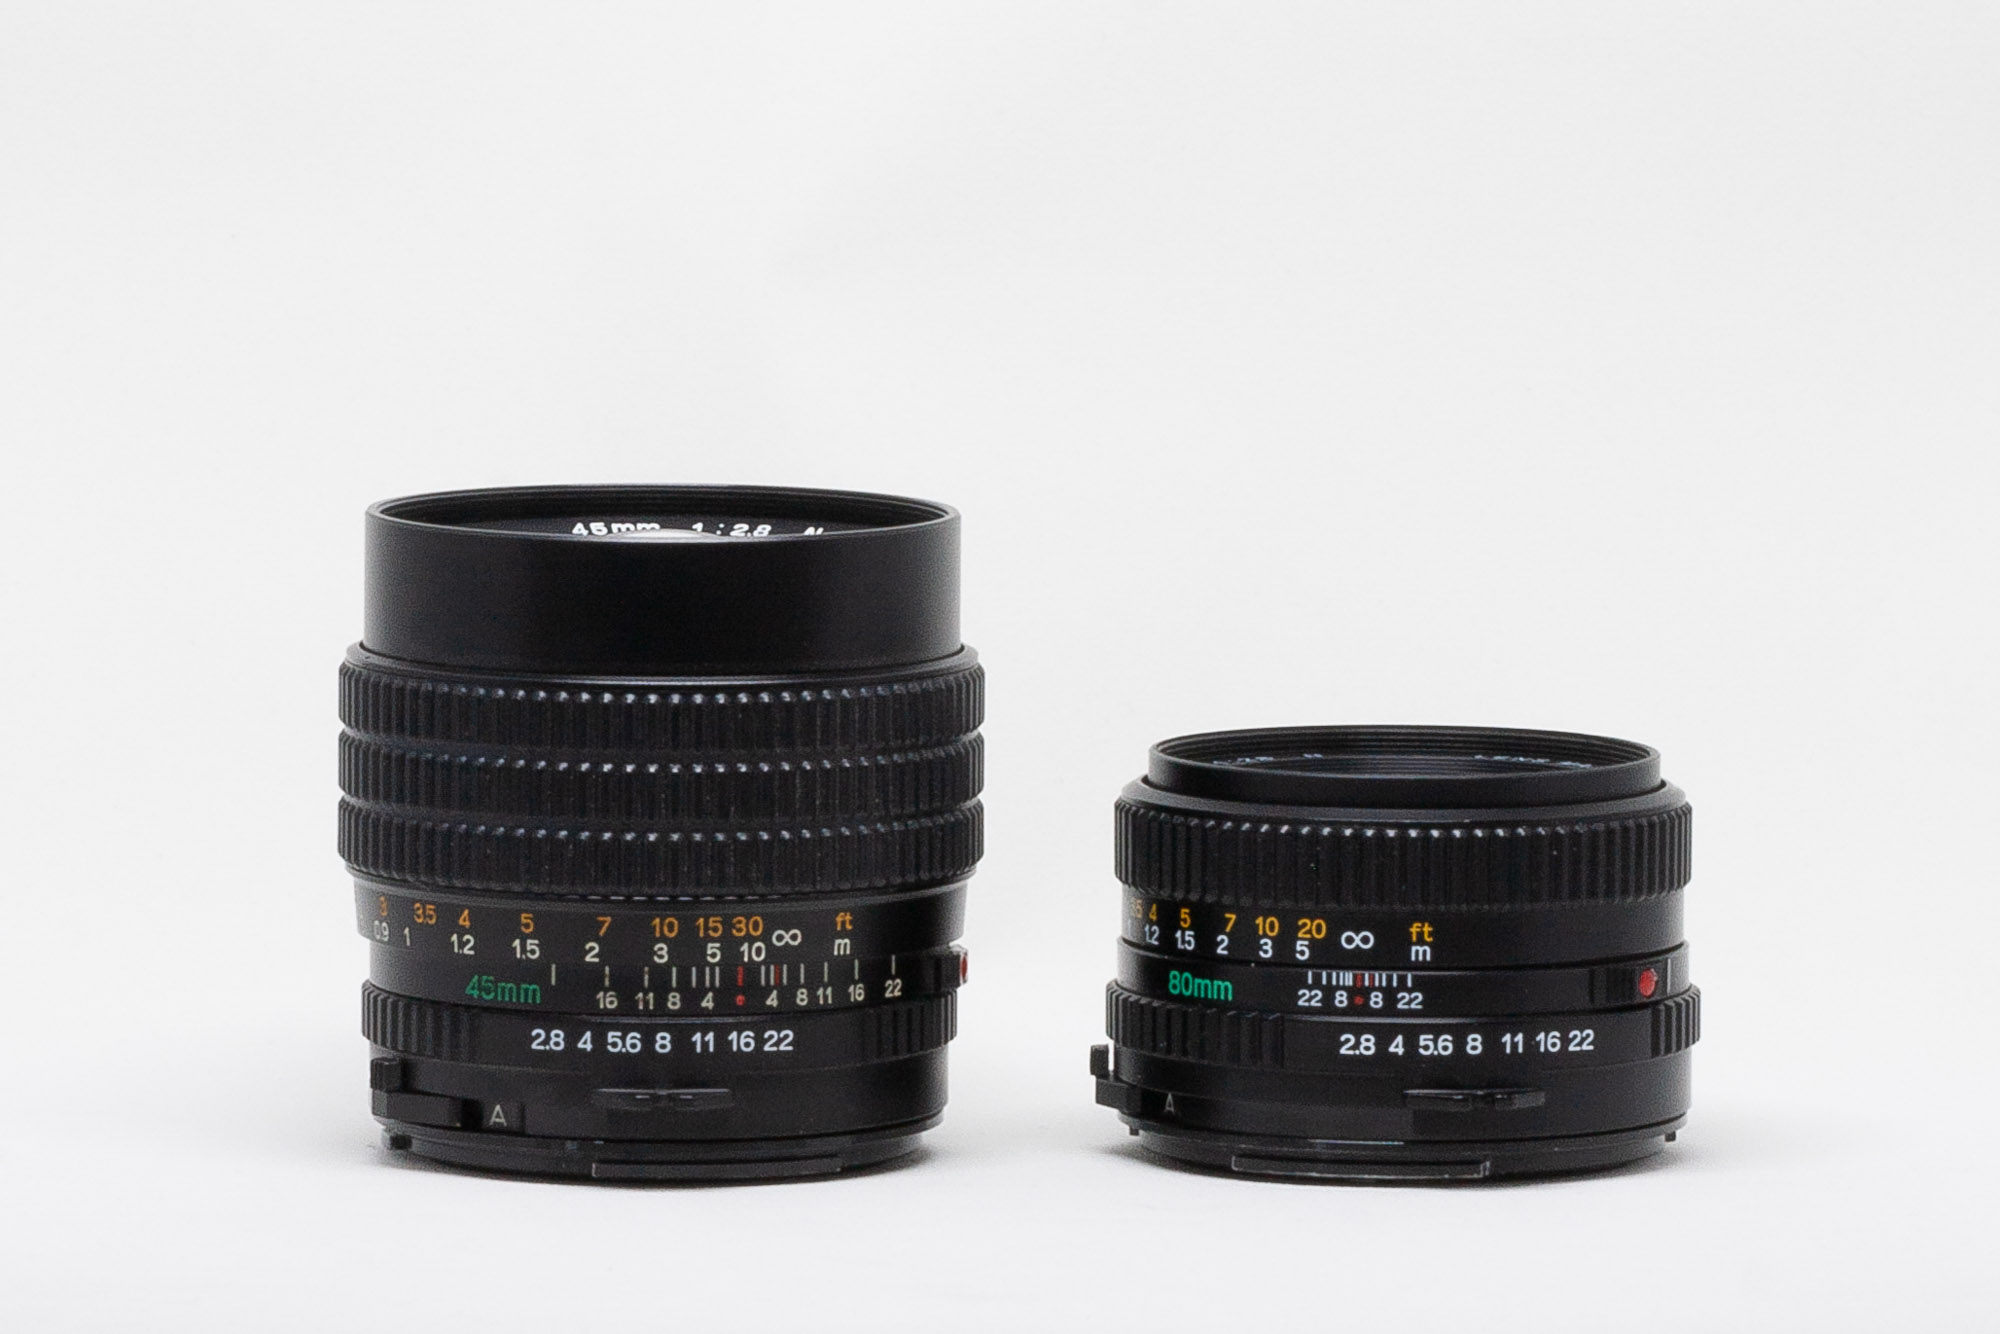 Side comparison of Mamiya-Sekor C 45mm f:2.8 N and Mamiya-Sekor C 80mm f:2.8 N lenses